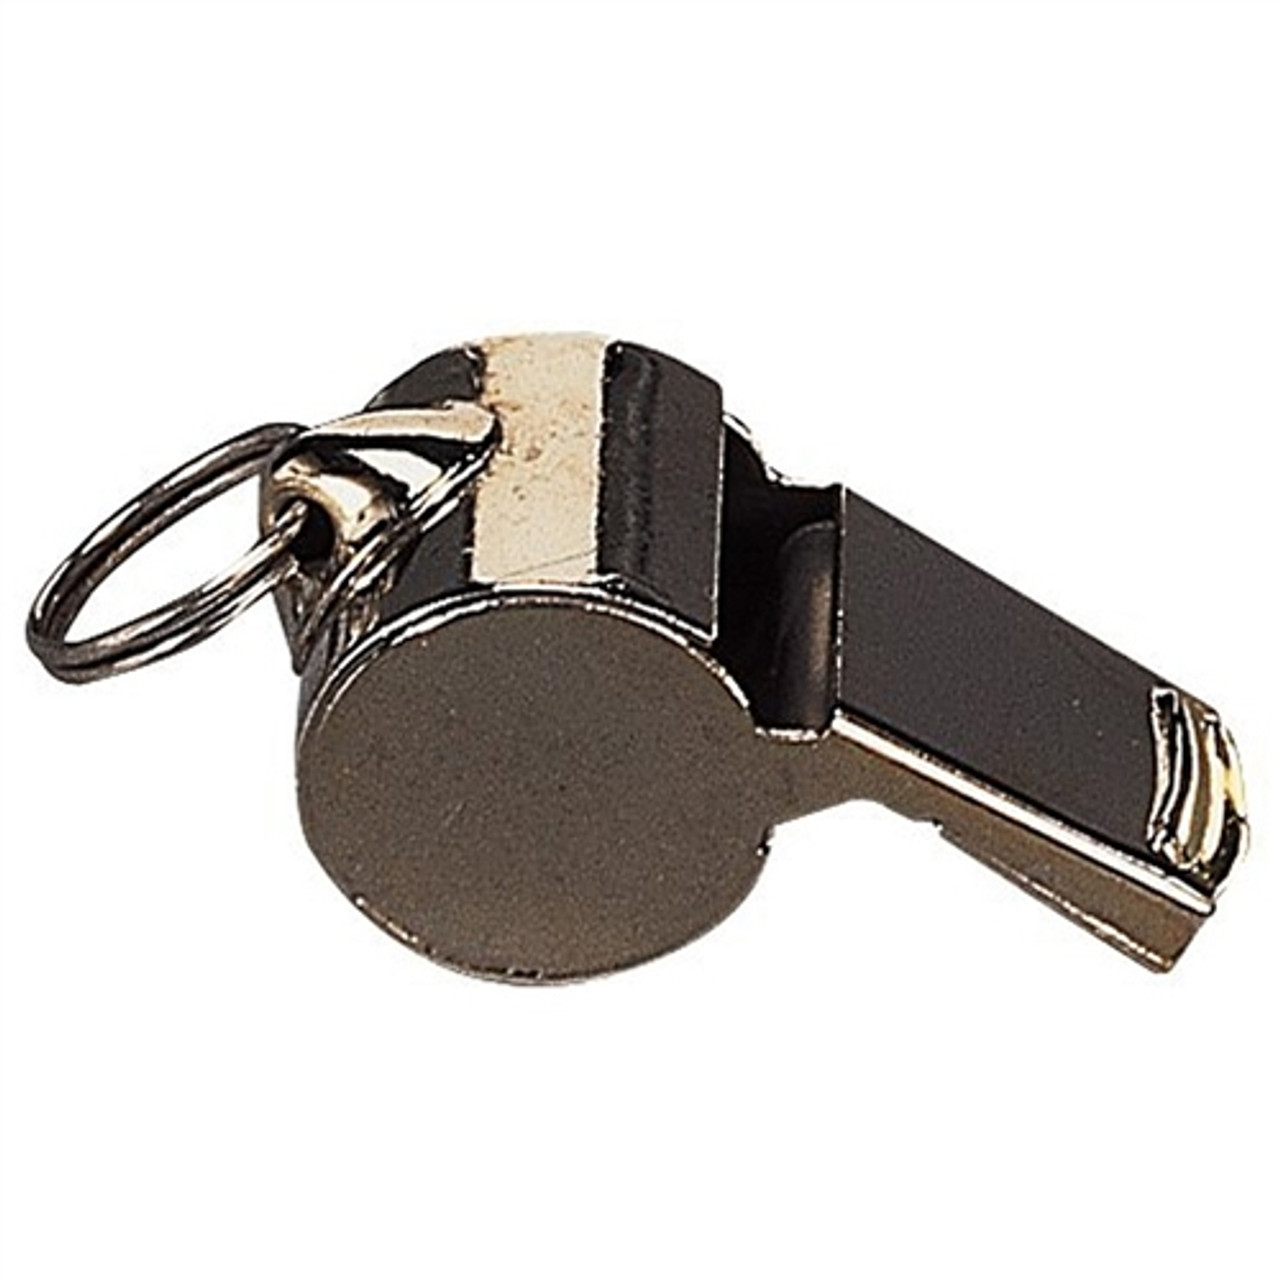 GI Style Police Whistle from Hessen Tactical